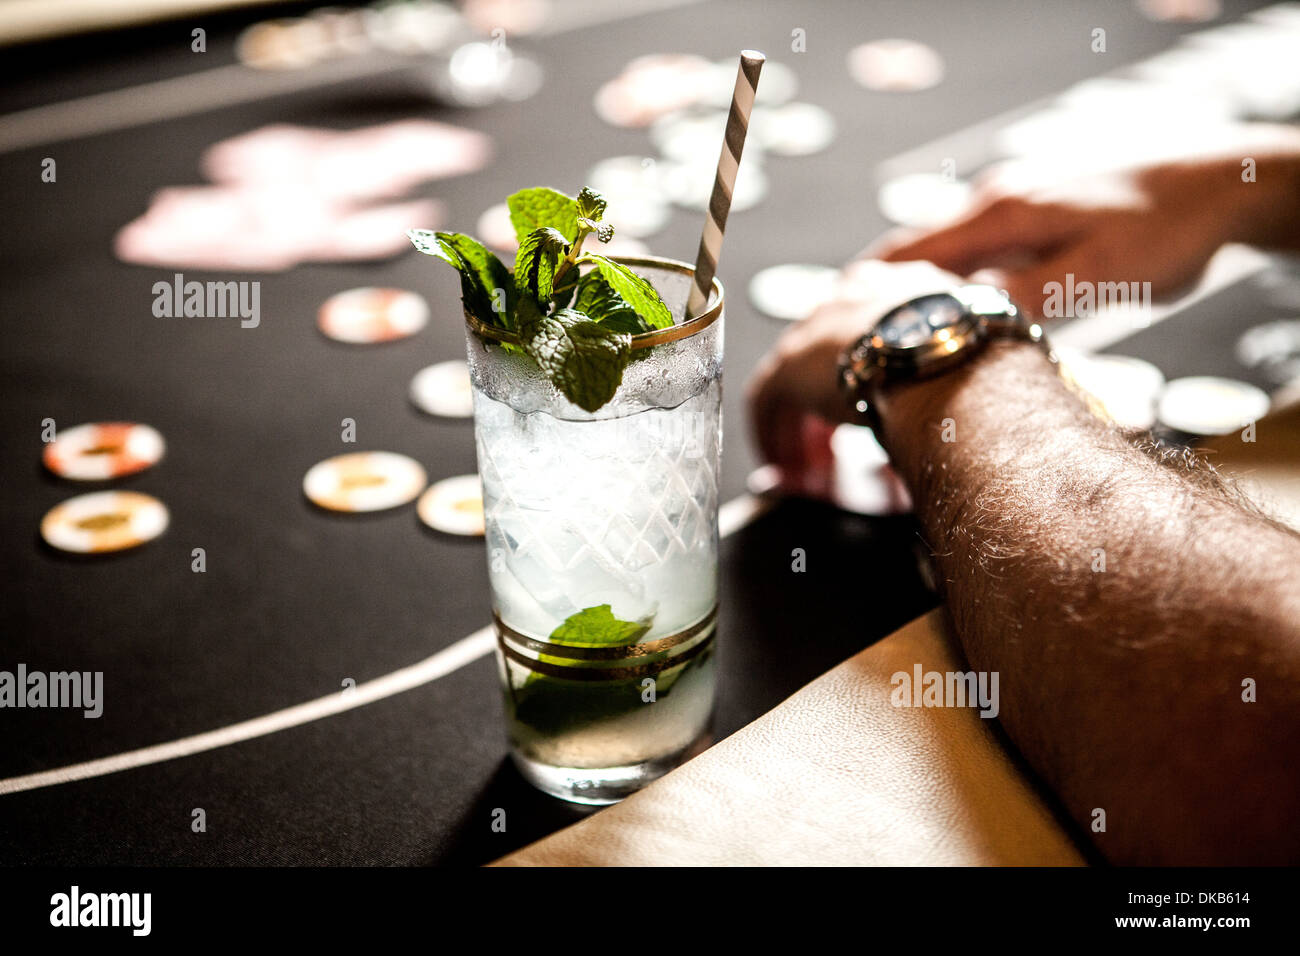 Cropped image of gambling table with playing cards, chips and cocktails - Stock Image